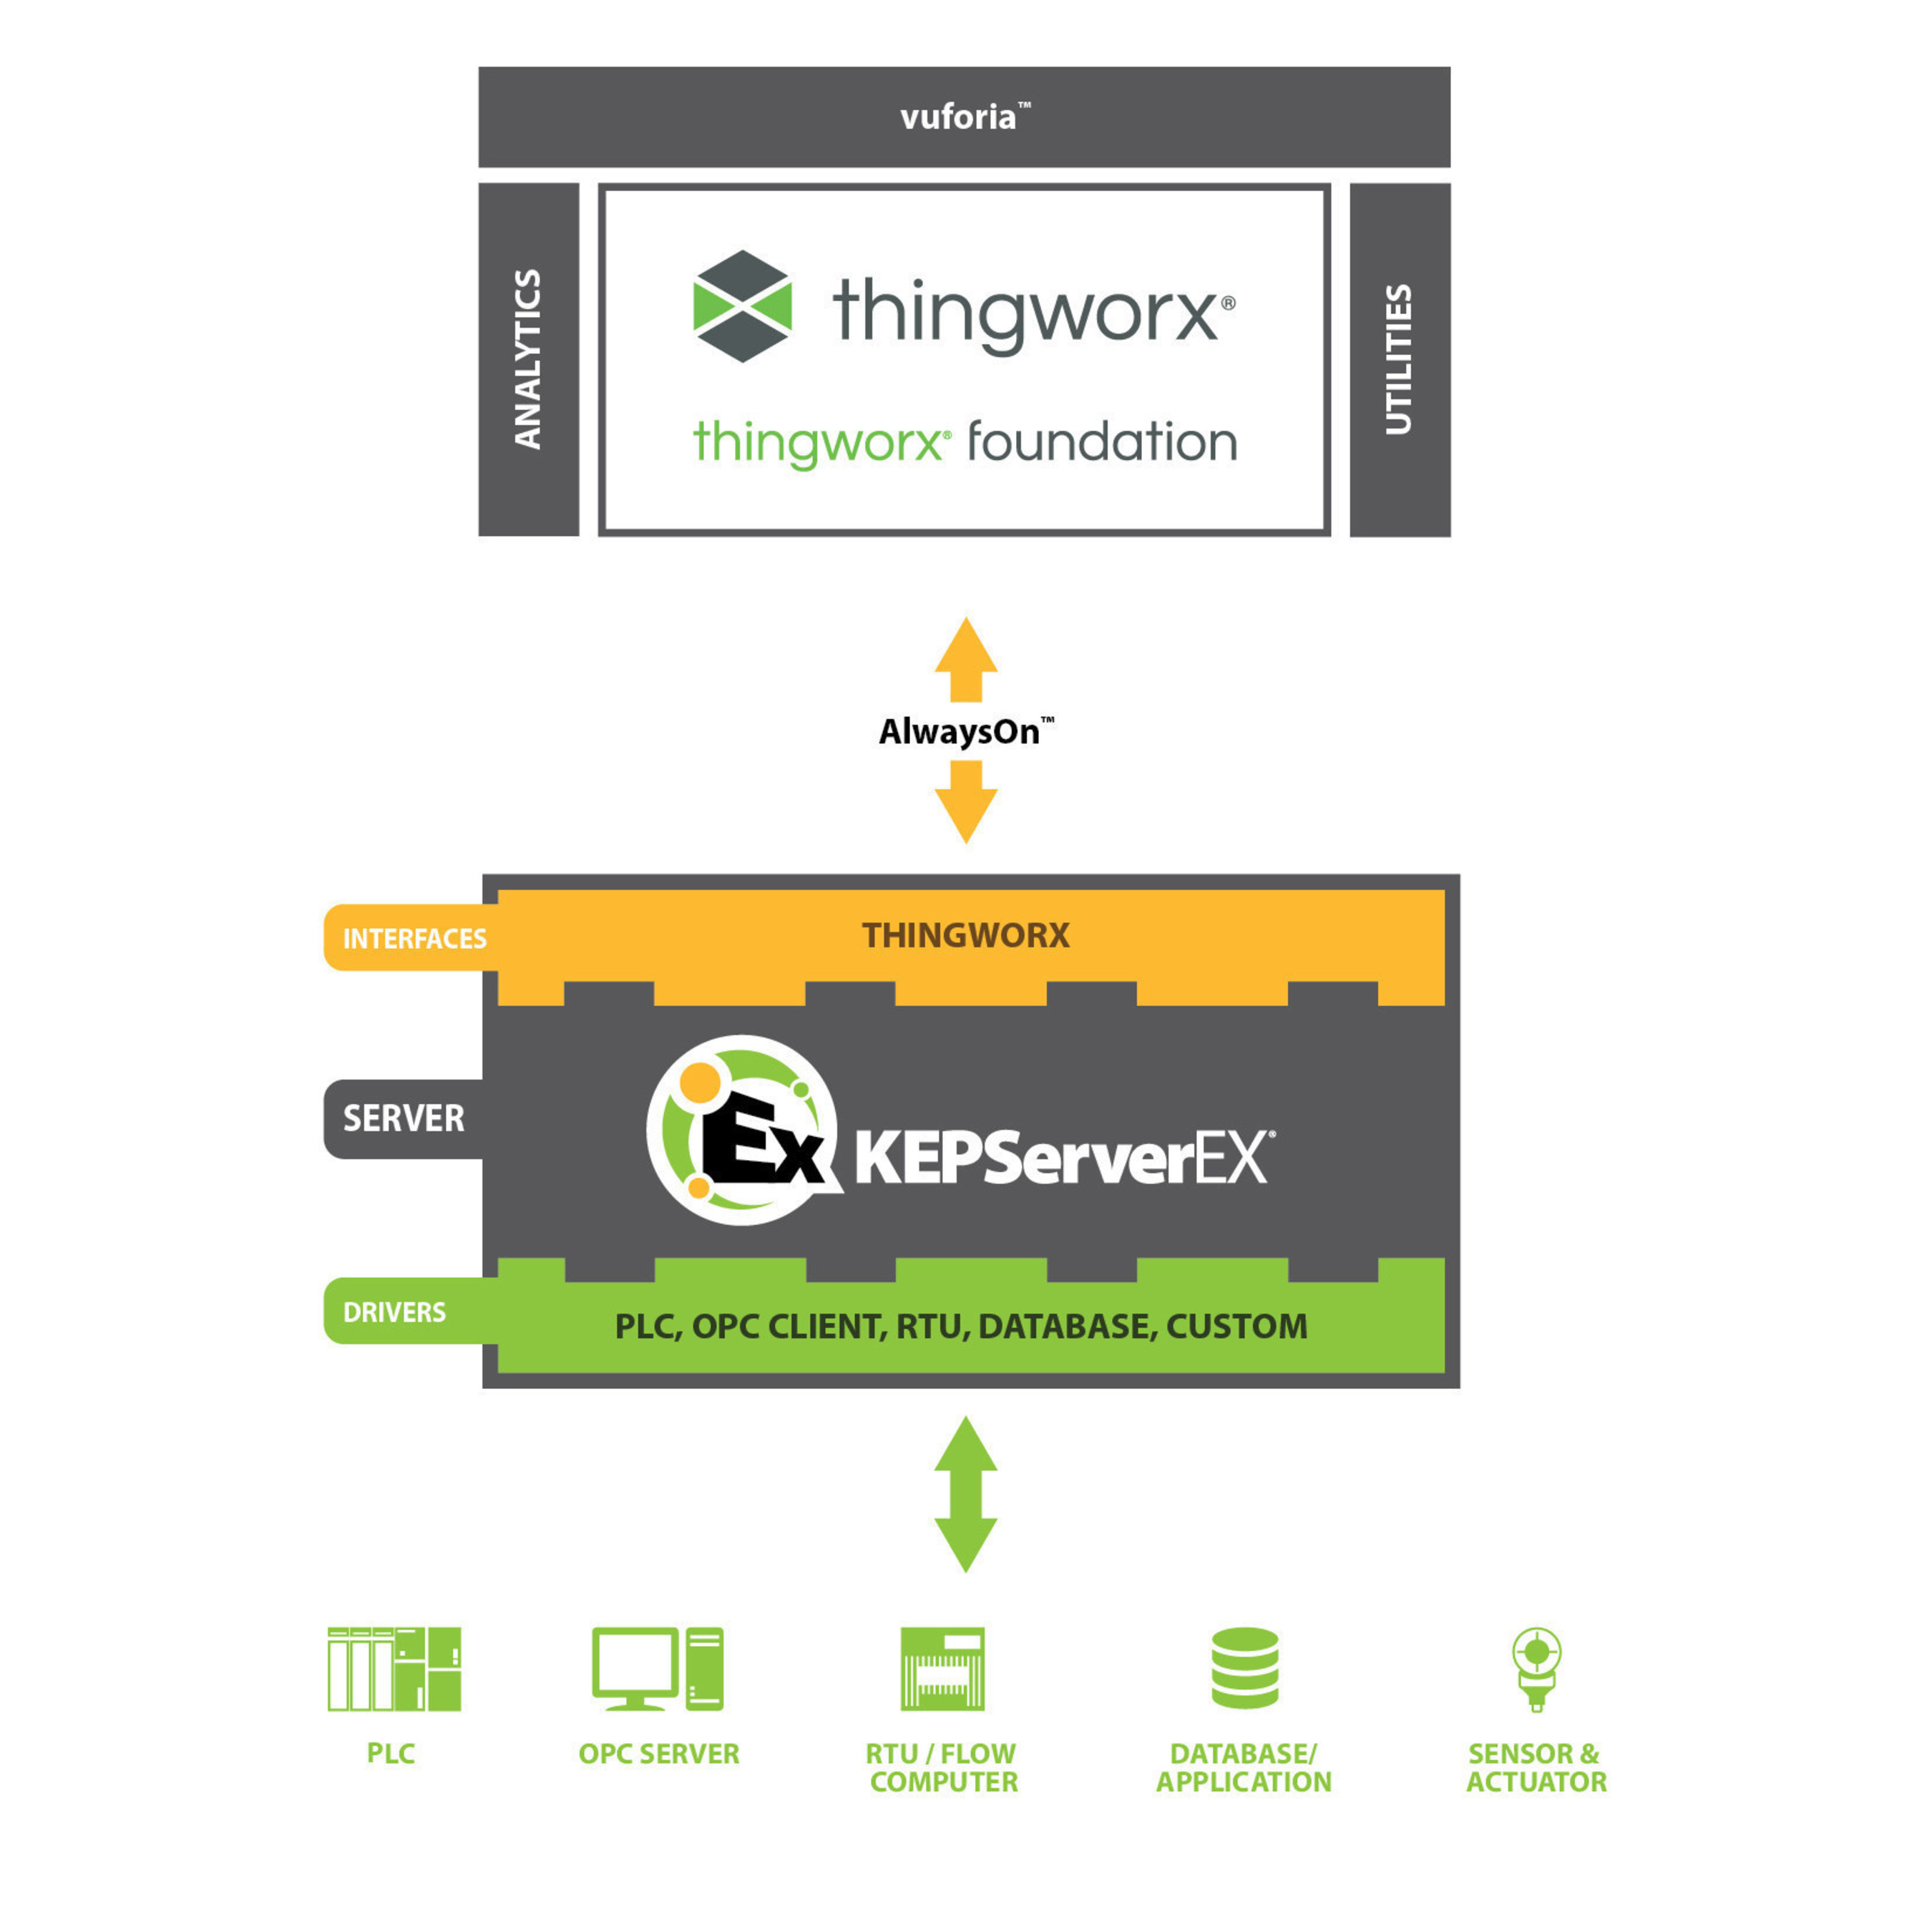 Direct integration via the new ThingWorx native client interface provides application developers access to real-time industrial automation data